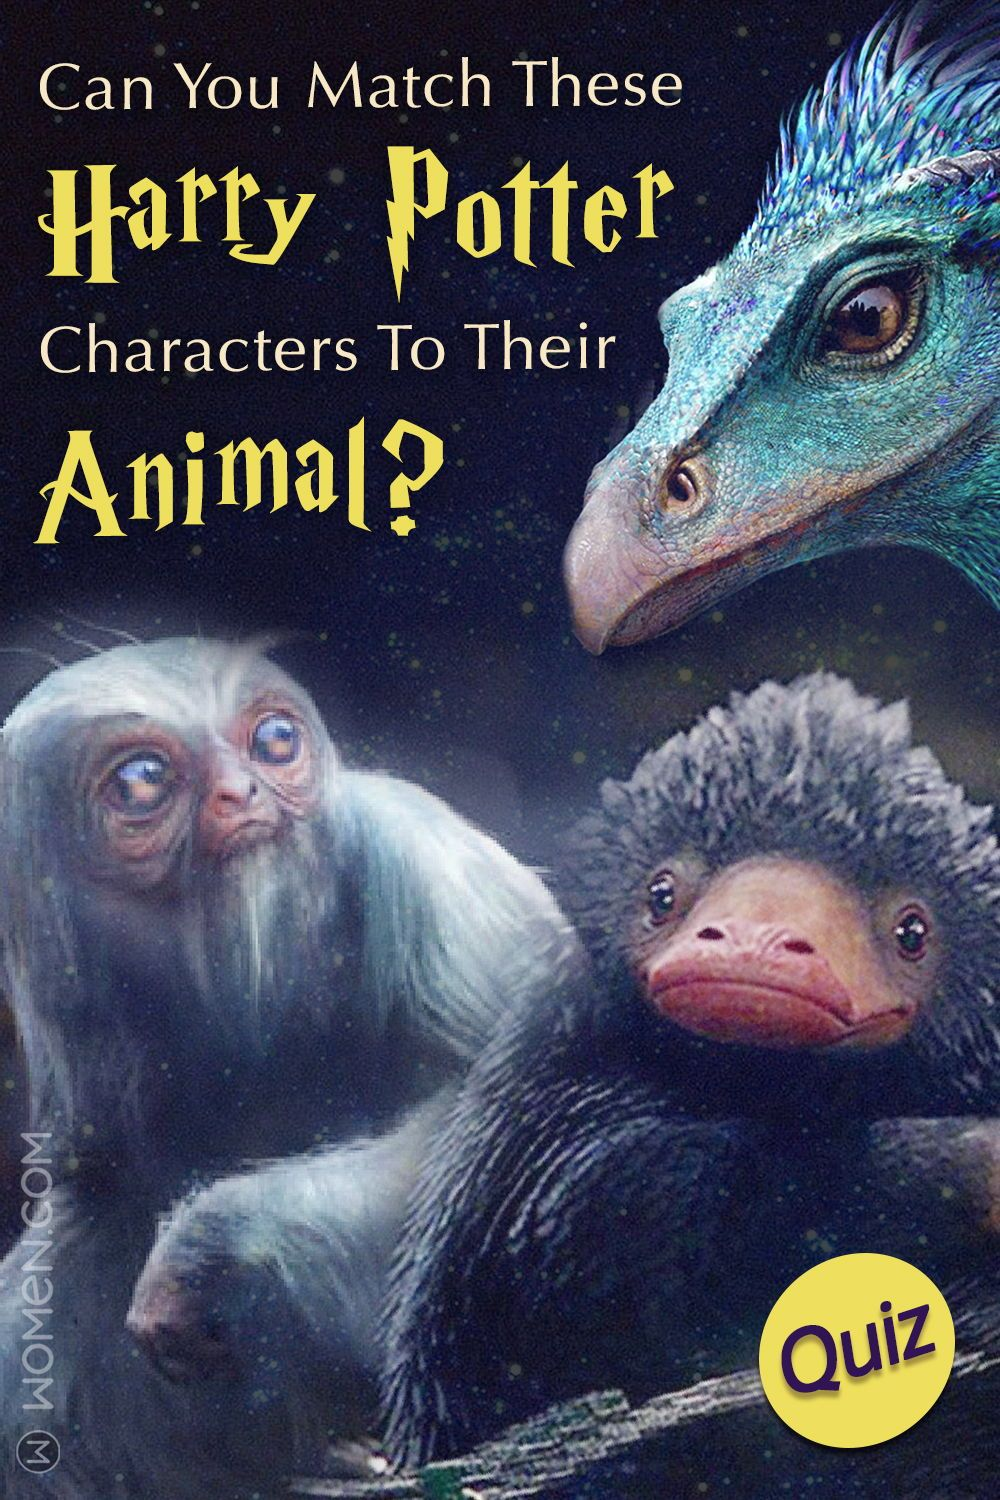 Hogwarts Quiz Can You Match These Harry Potter Characters To Their Animal Harry Potter Characters Harry Potter Harry Potter Quiz